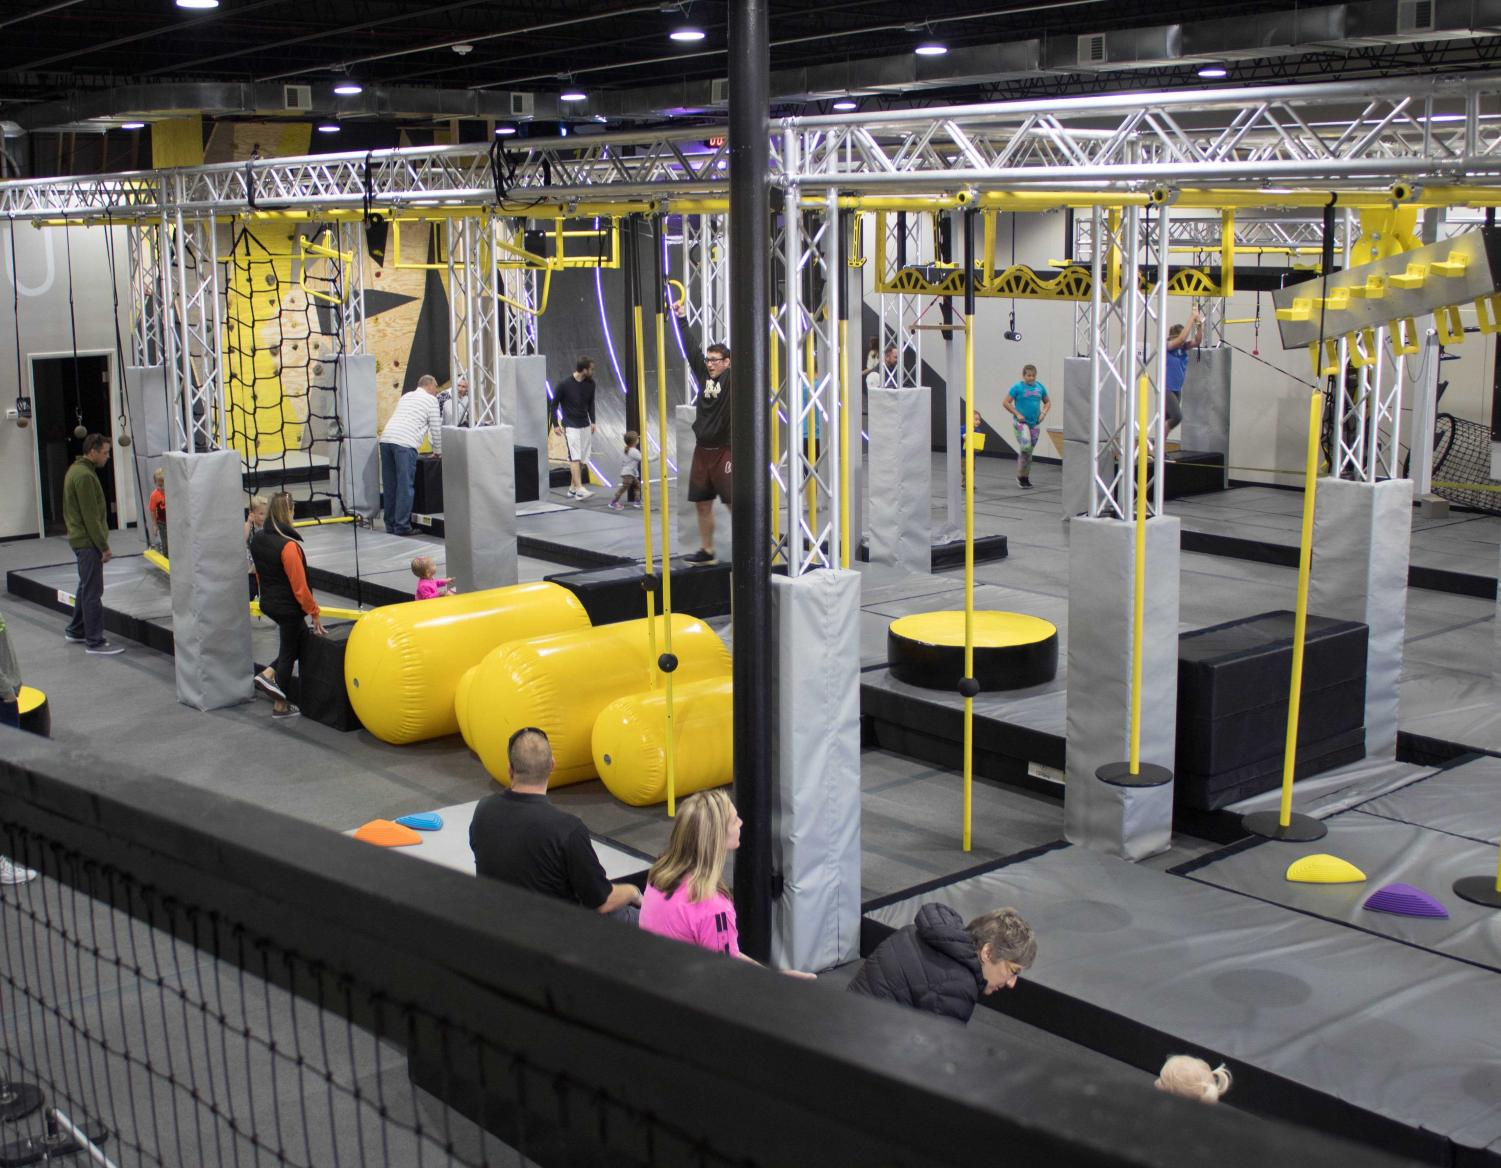 Ninja U looks to bring a new style of fitness to the Cedar Valley.